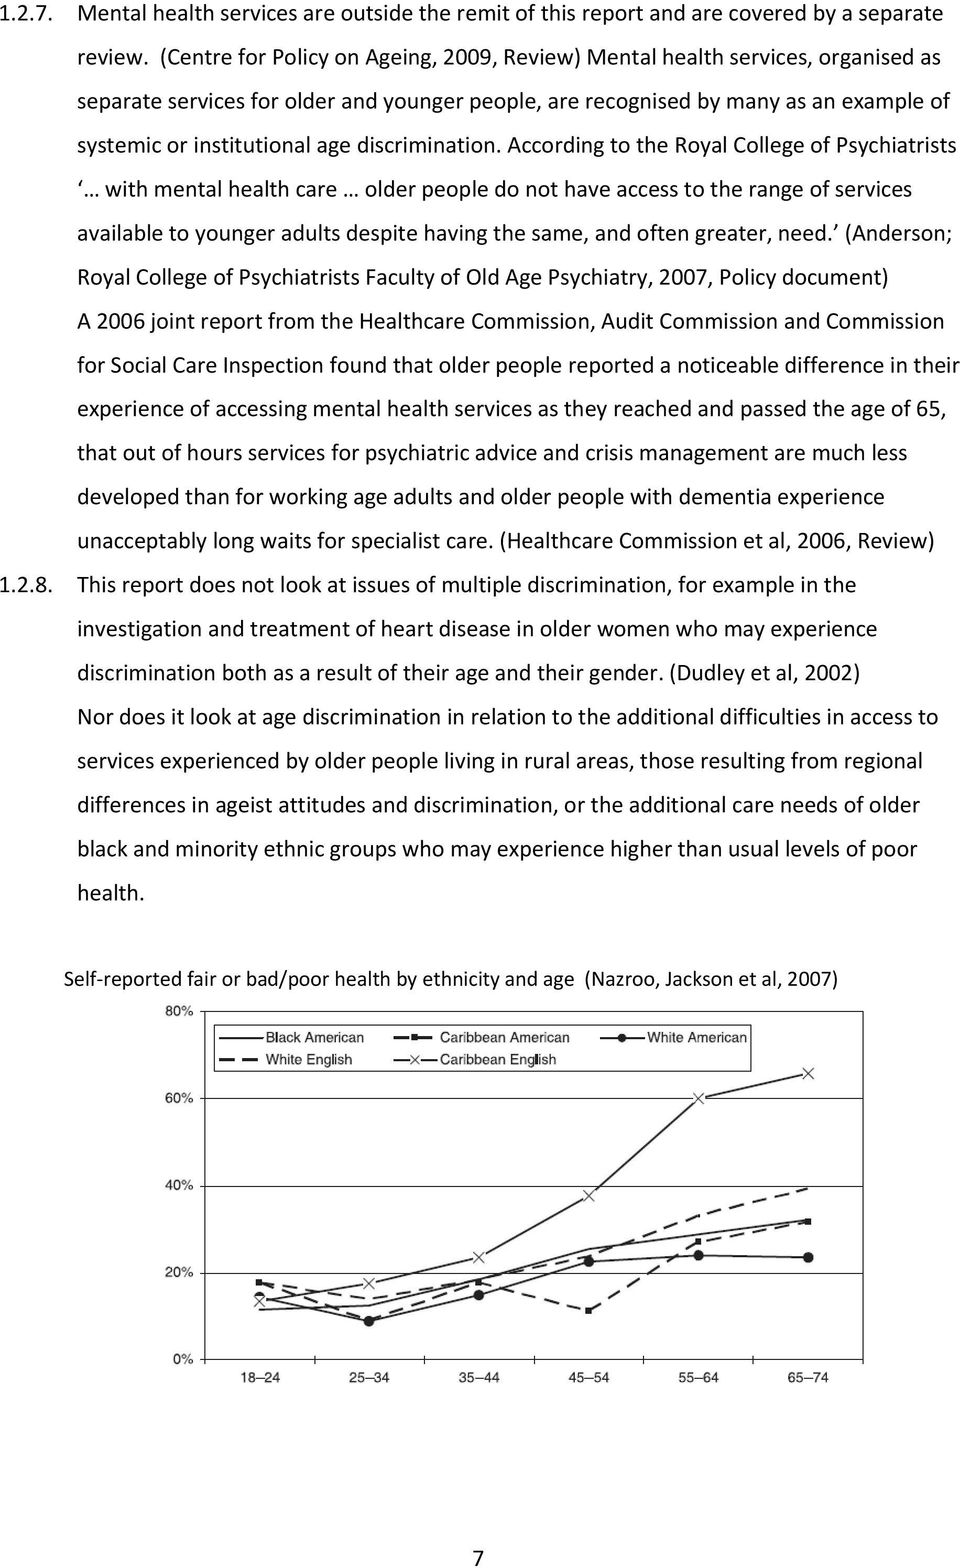 Ageism and health care